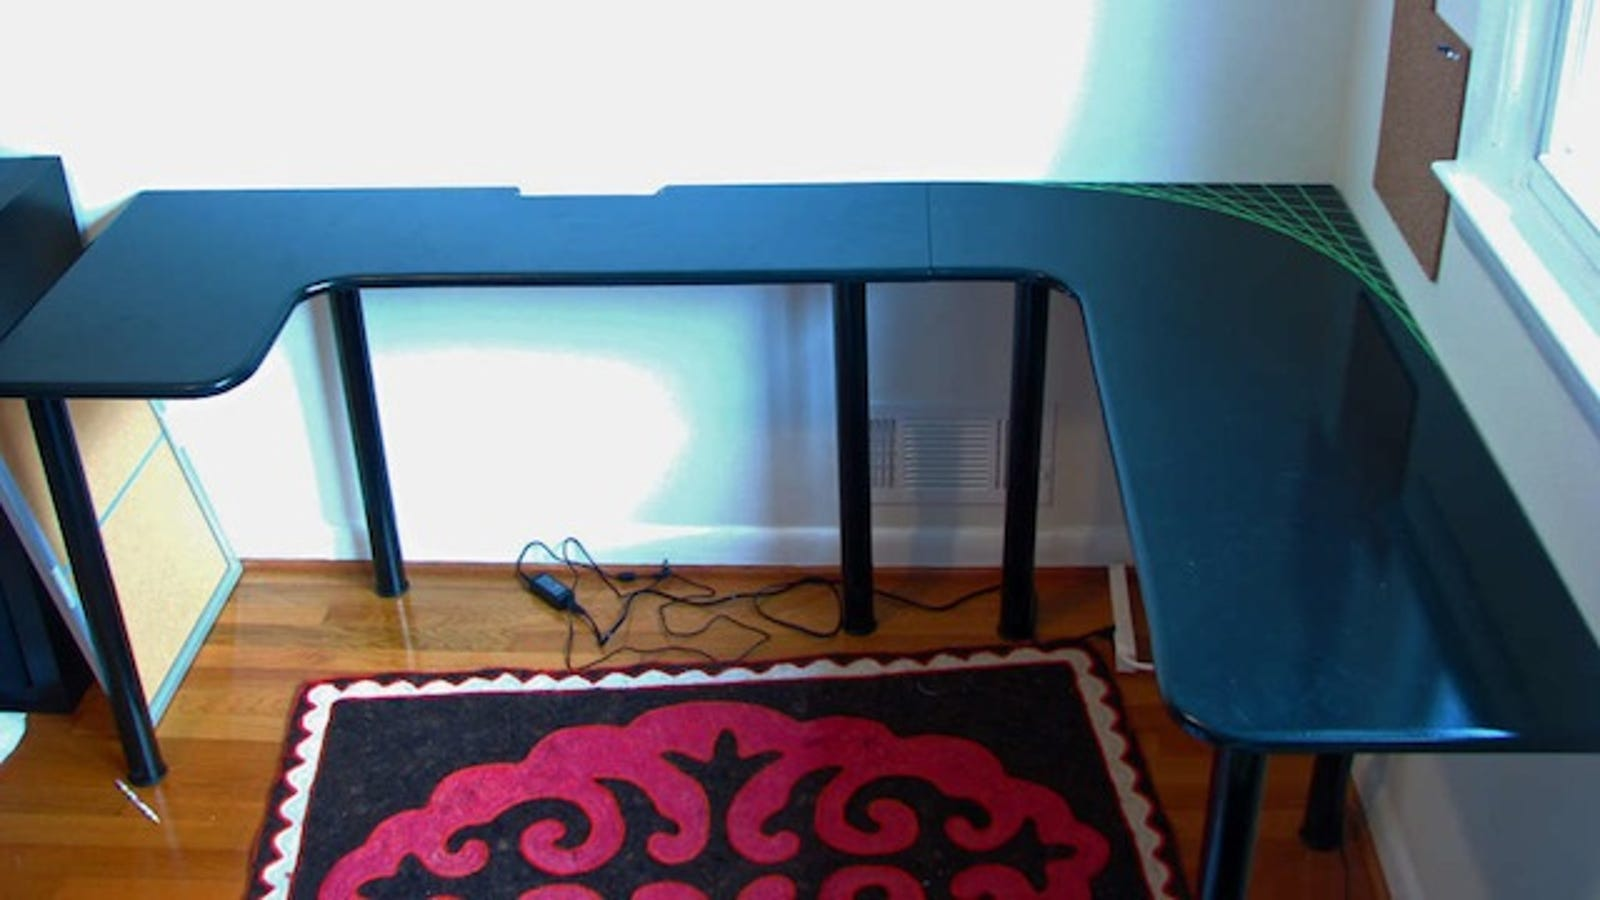 Cost U Less >> Build Your Own U-Shaped Computer Desk for Less than $100